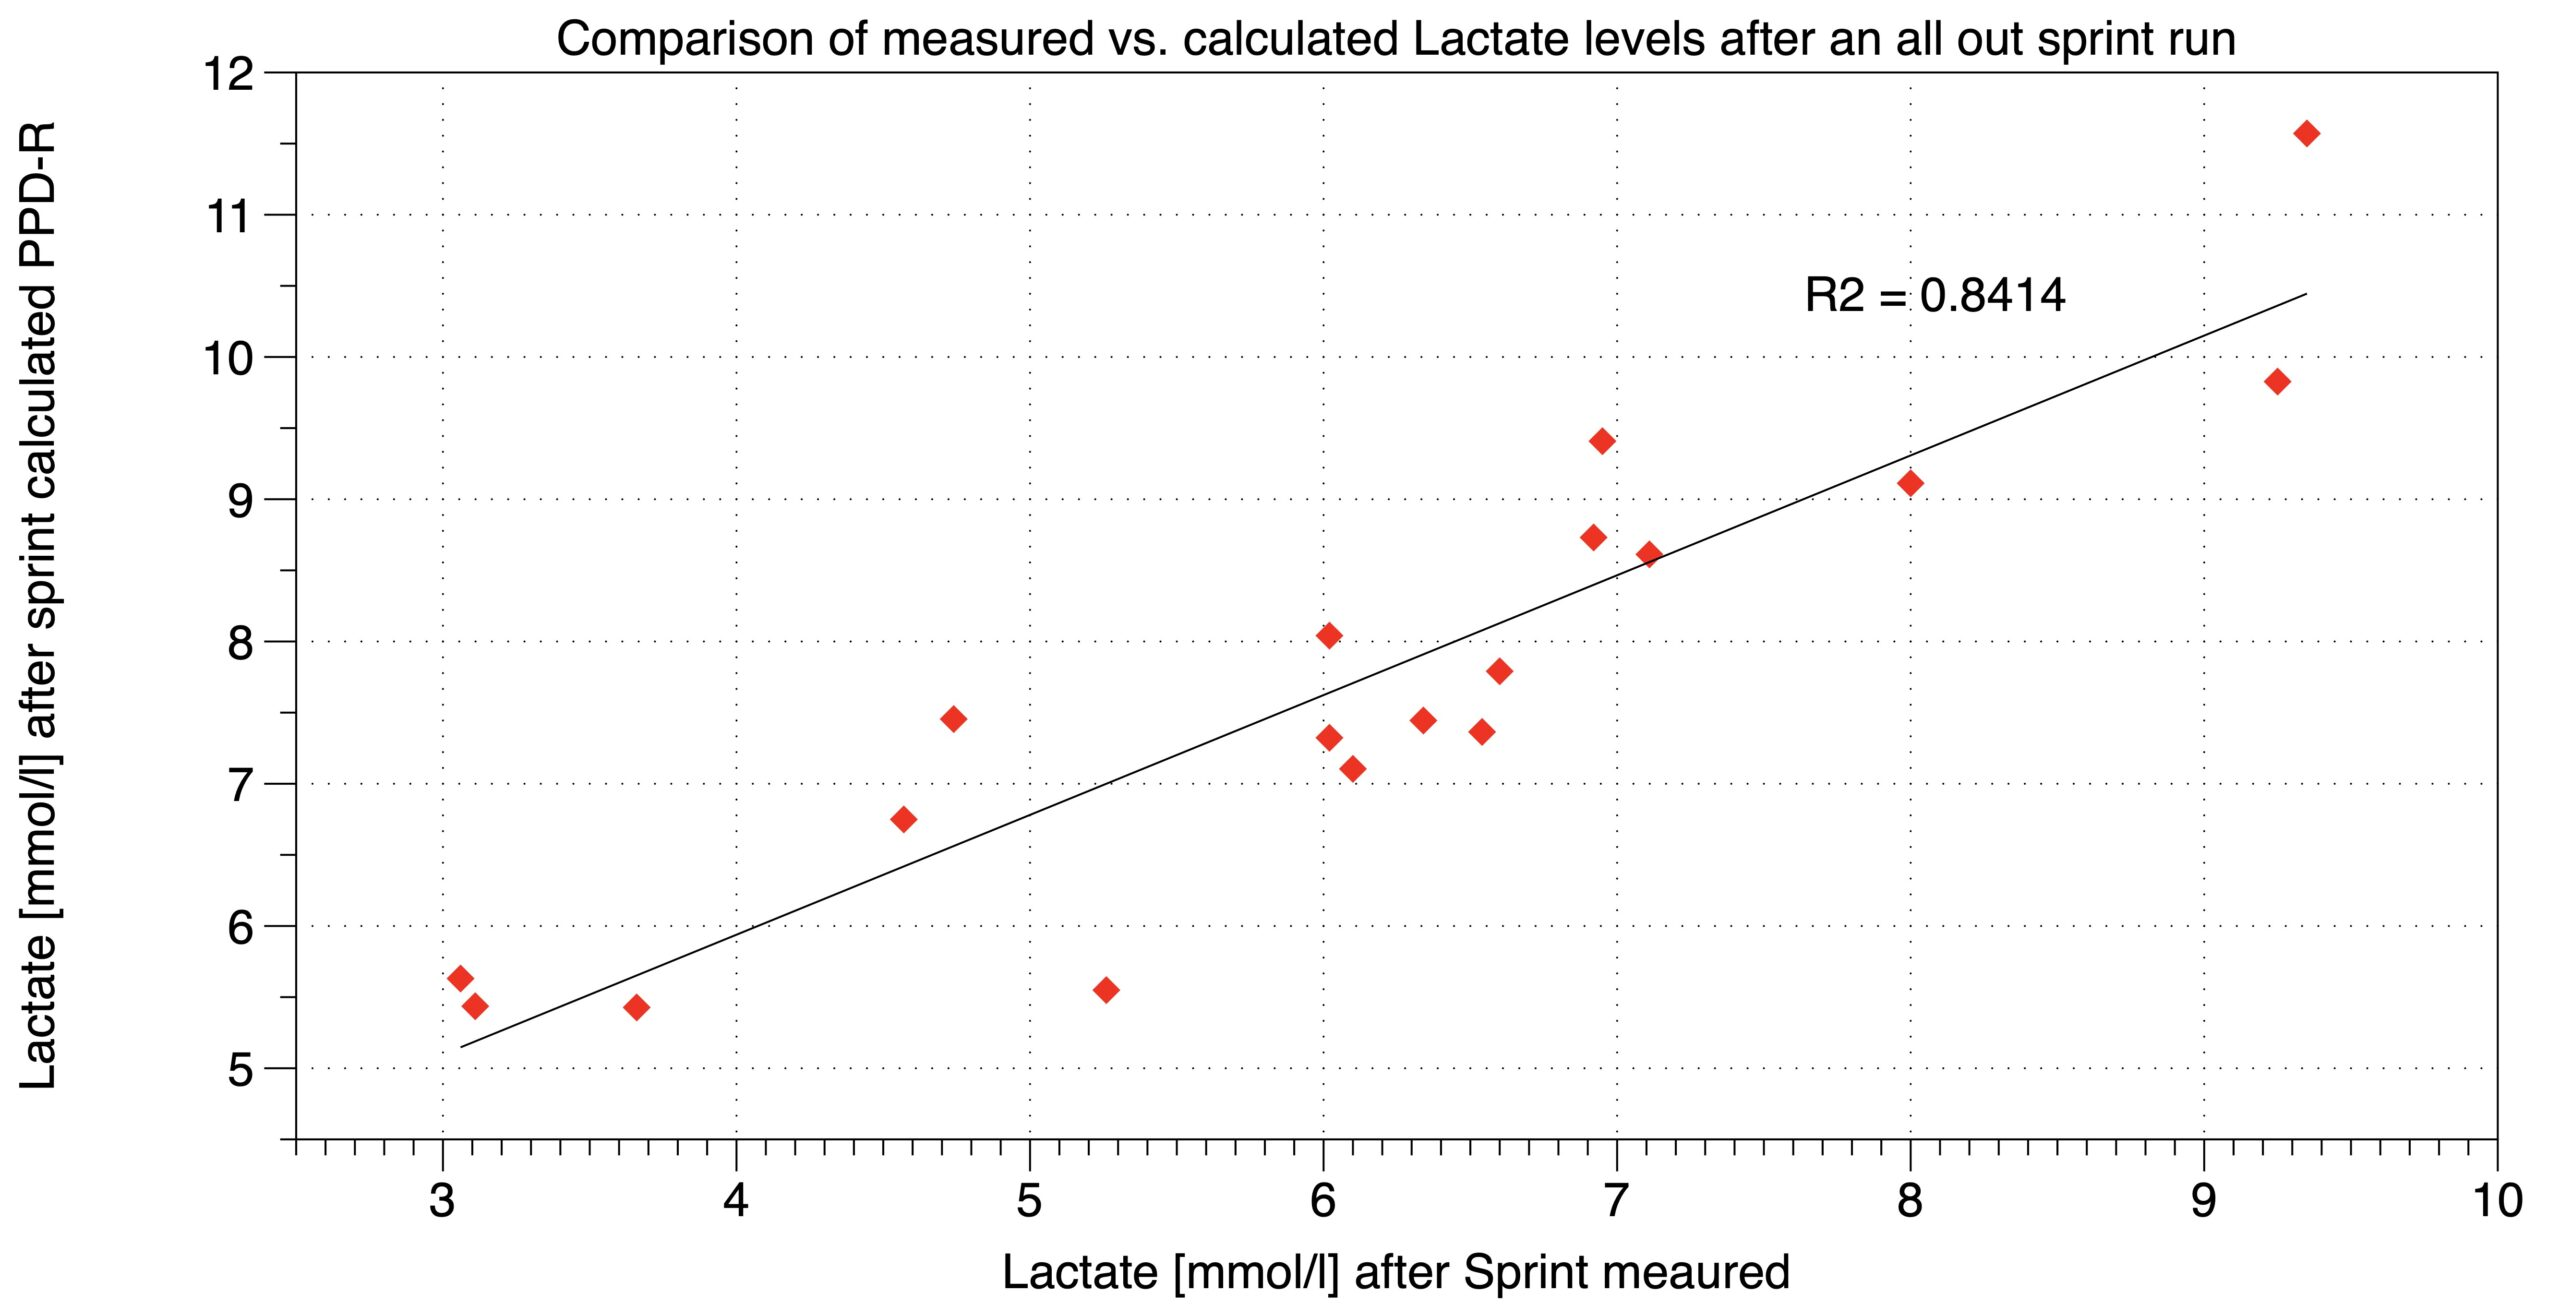 Validity of the VLamax in PPD-R. Comparing PPD-R results (y-axis) with actual lactate measurements (x-axis).